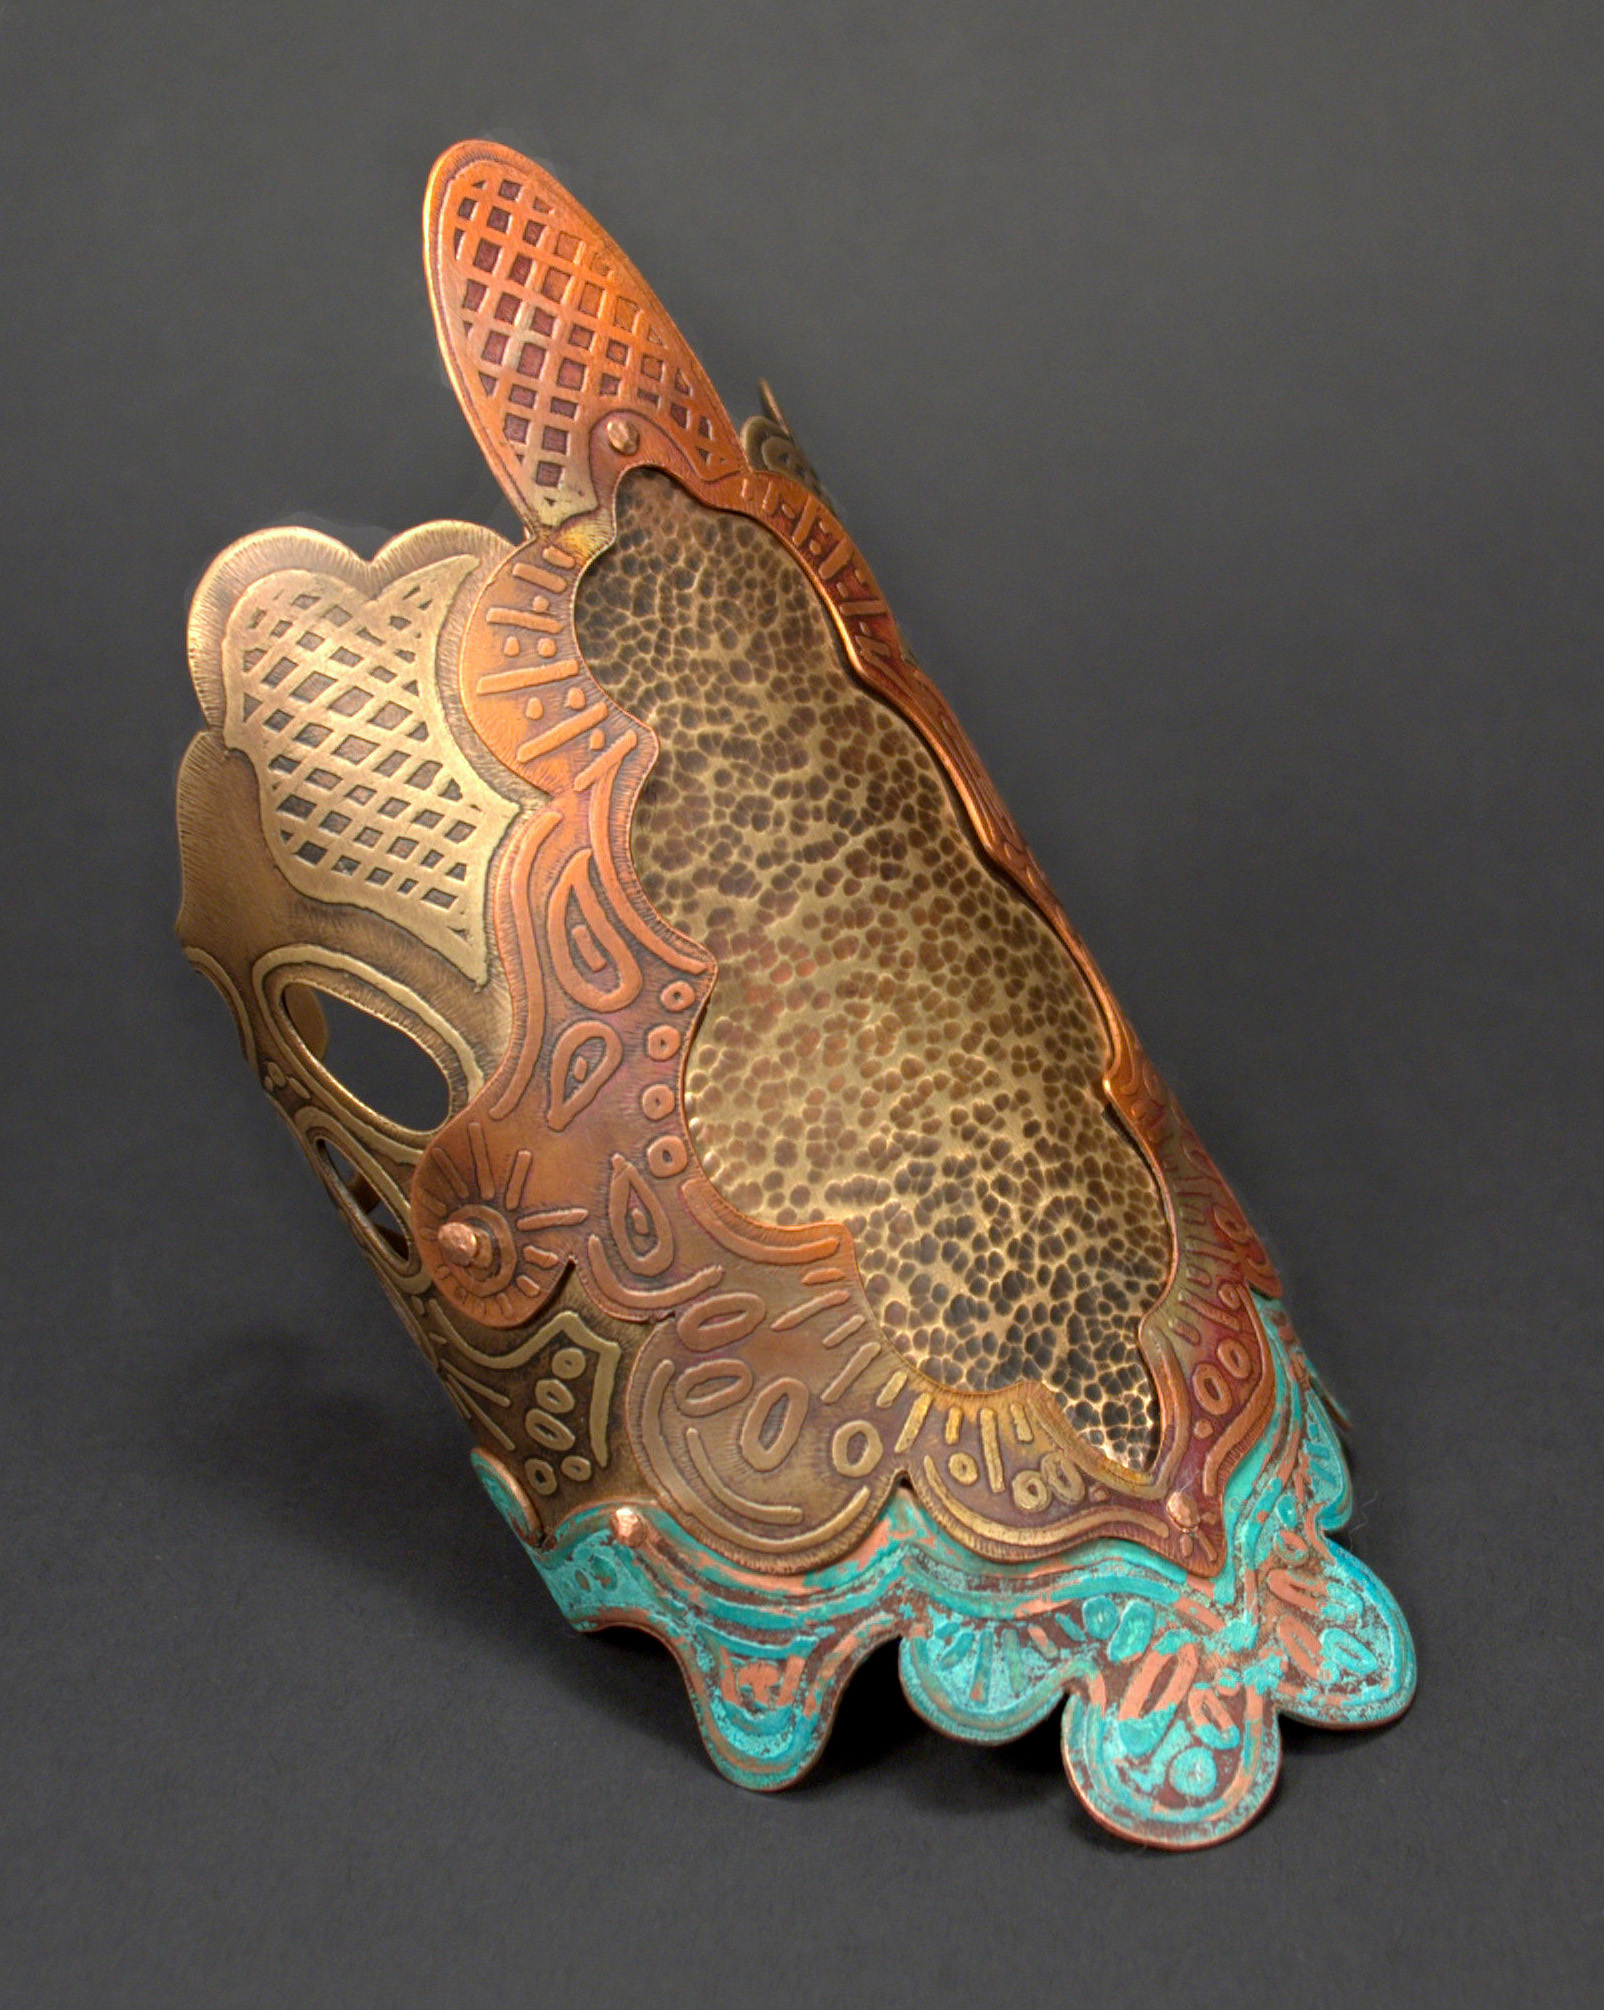 Dawna_Gillespie_copper_brass_cuff_Predilection-001